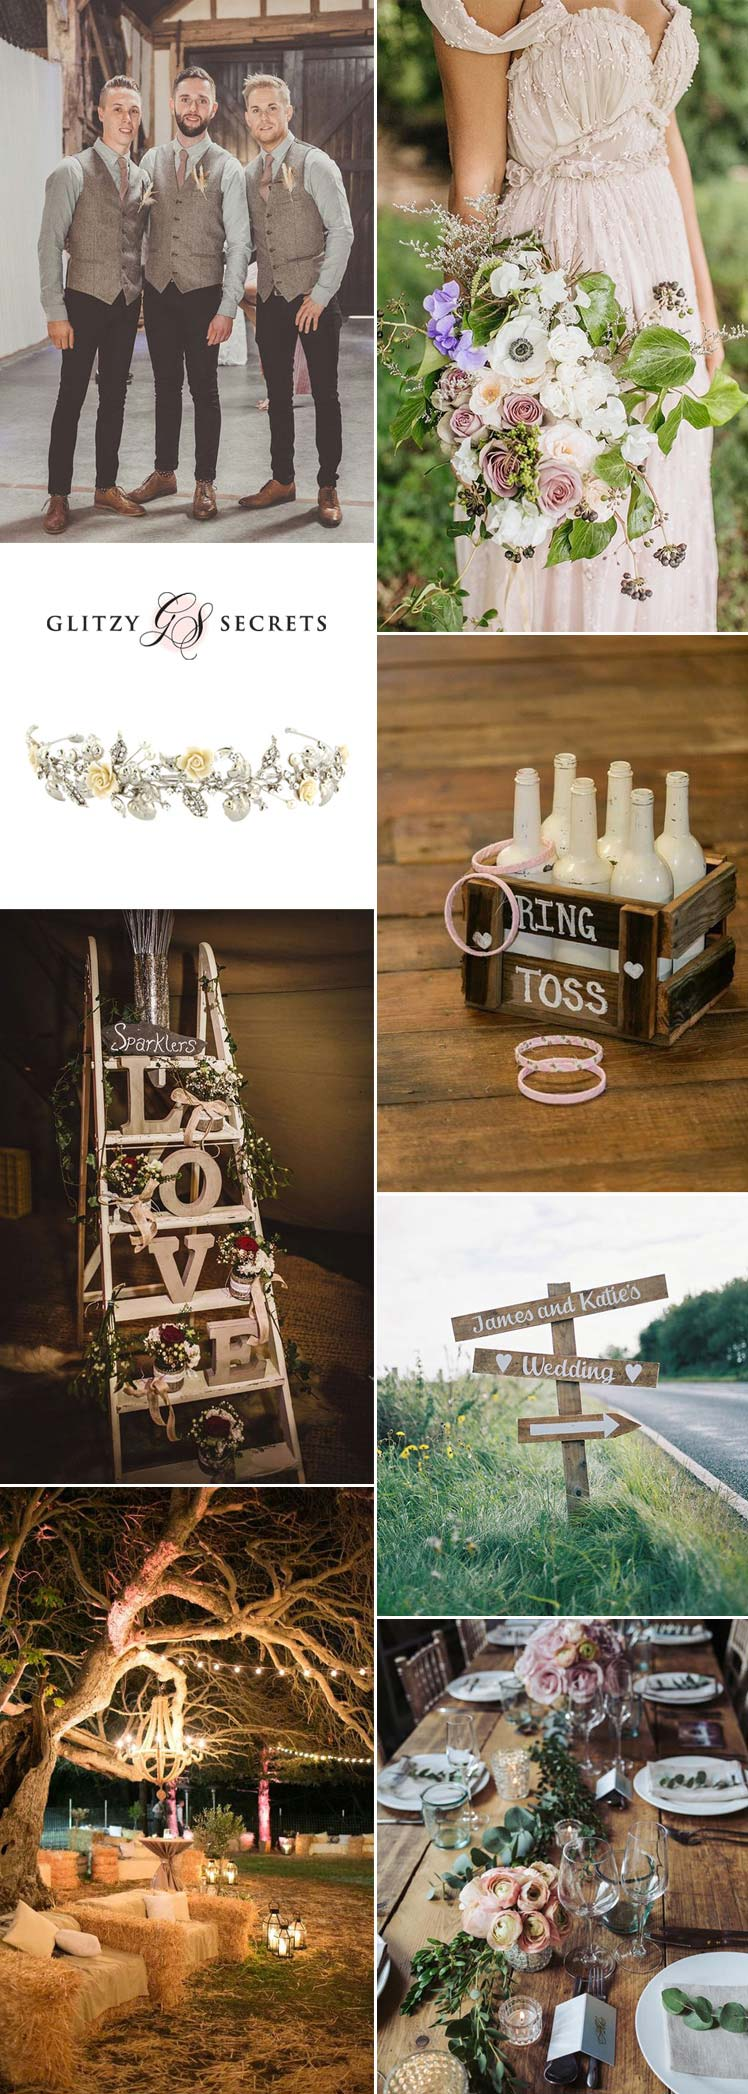 gorgeous rustic countryside wedding ideas